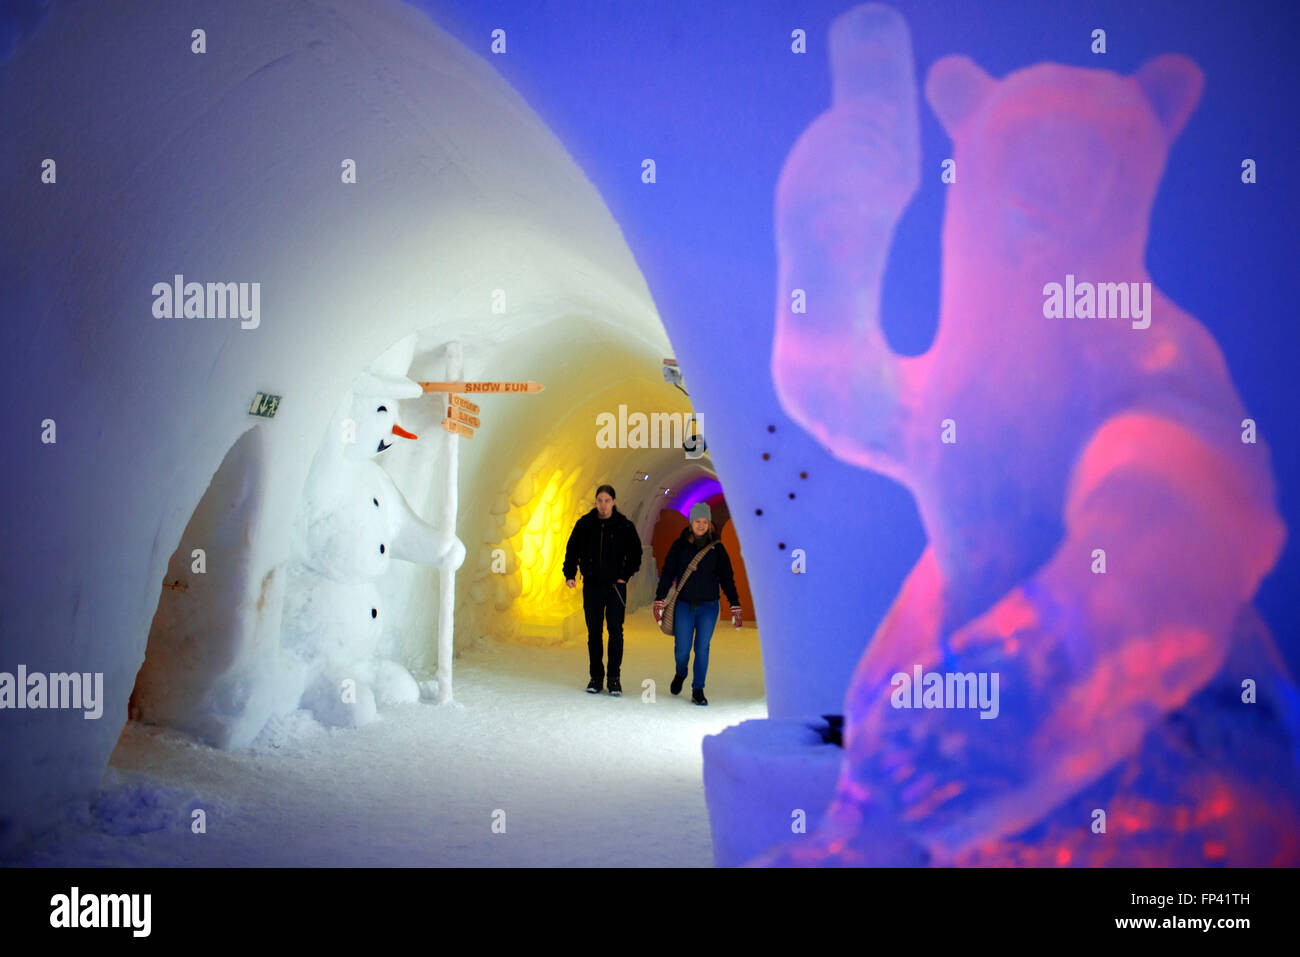 Hotel, rooms, acomodation. Igloo Hotel. Lapland, Finland. Snowman World Igloo Hotel in Rovaniemi in Lapland Finland. Stock Photo